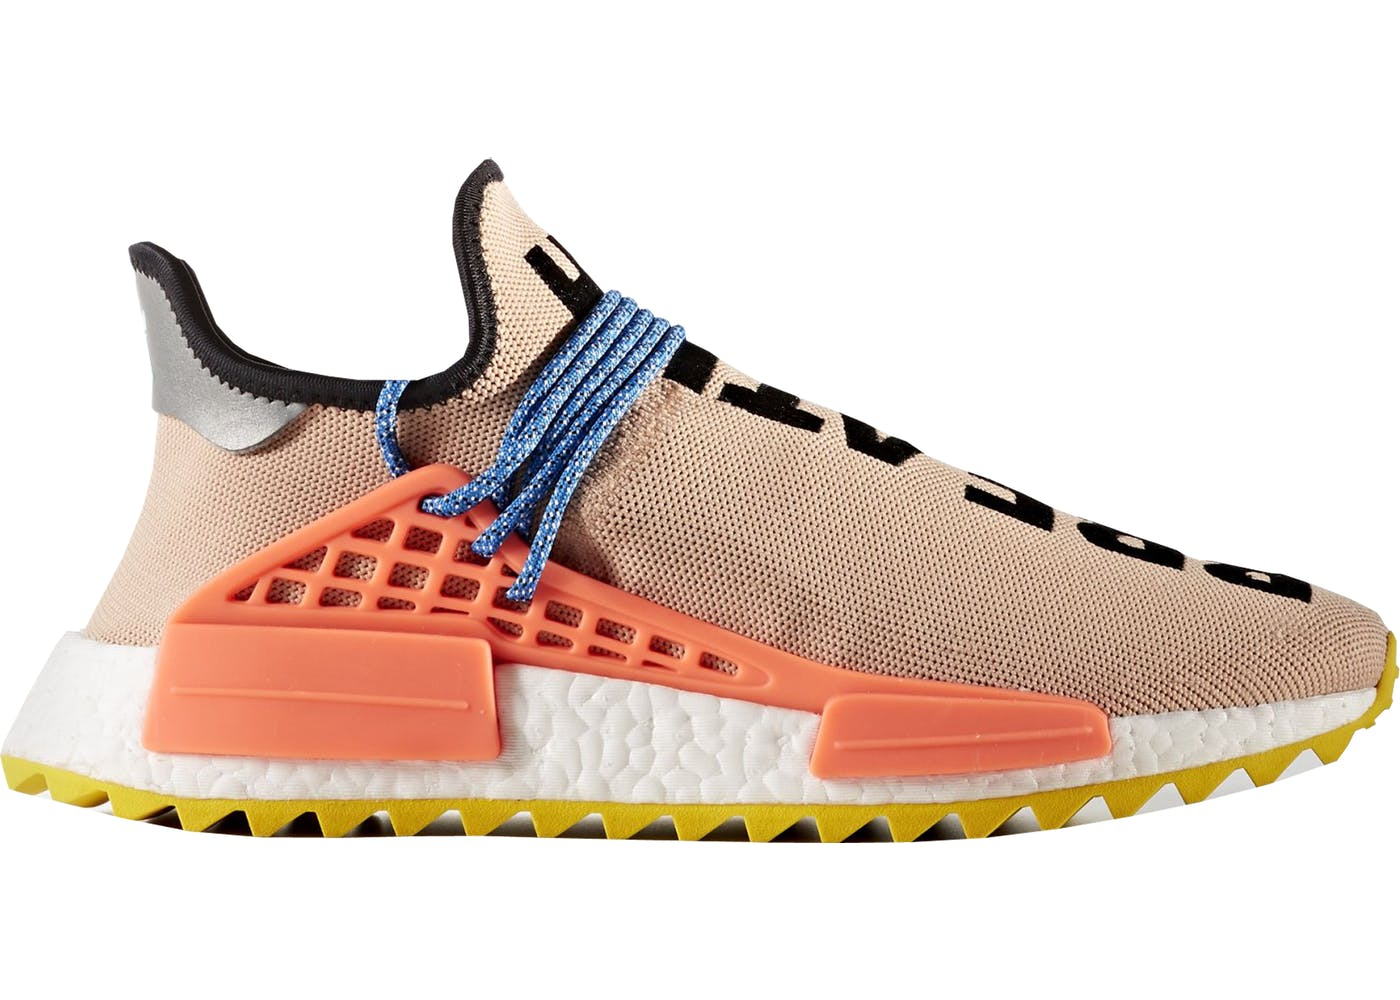 Another Pharrell x adidas NMD Hu Could Be Releasing Soon